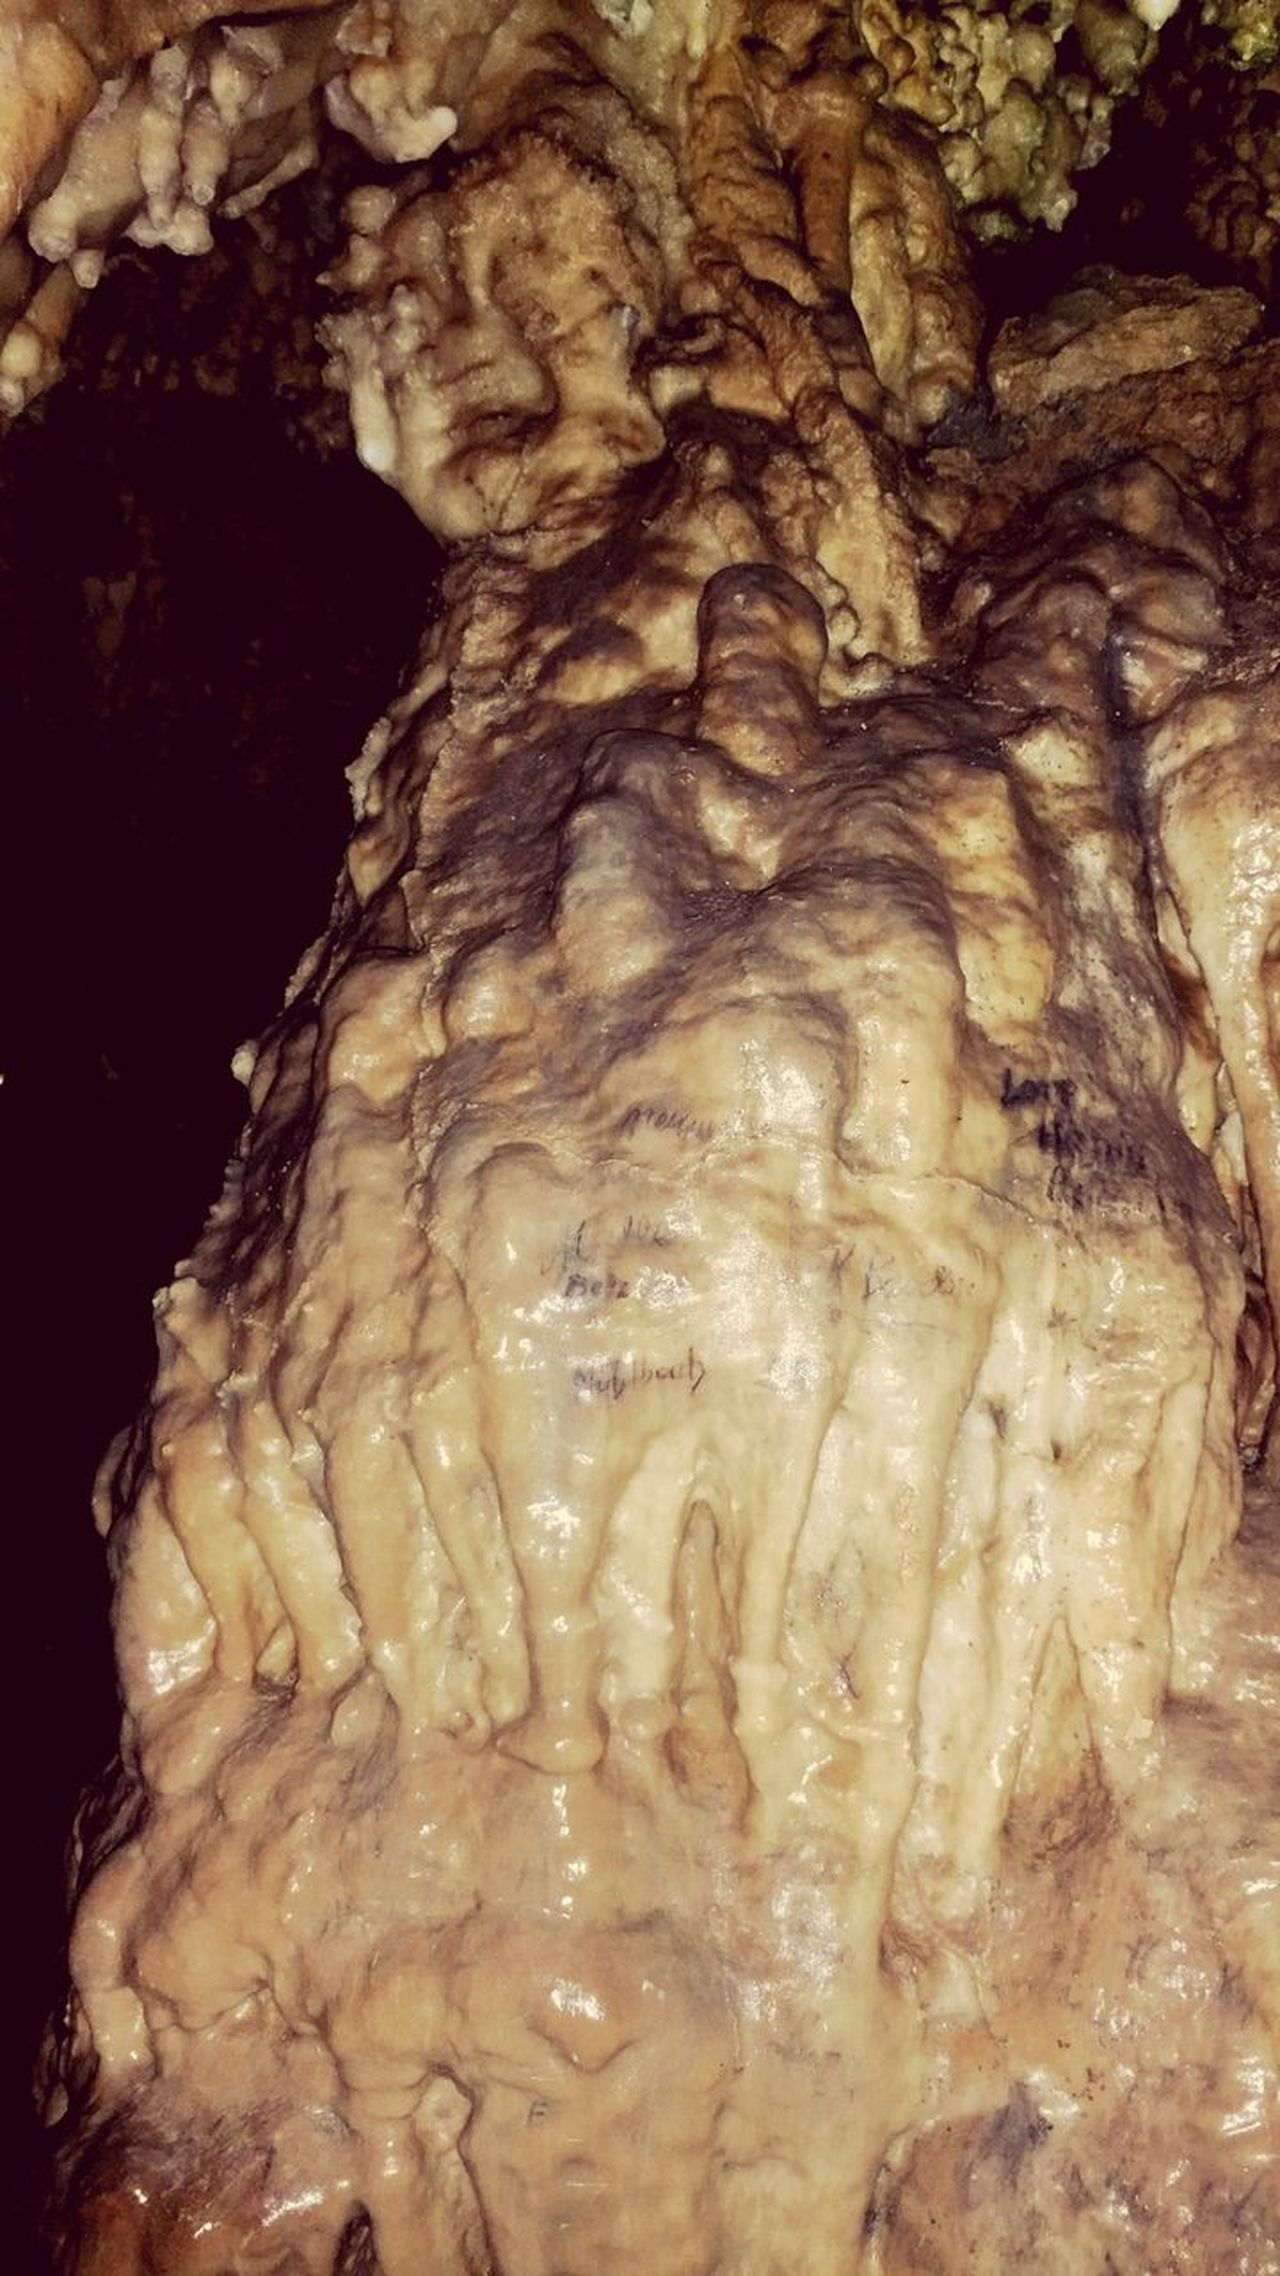 Outdoors No People Beauty In Nature Cave Tropfsteinhöhle Nature Photography Nature